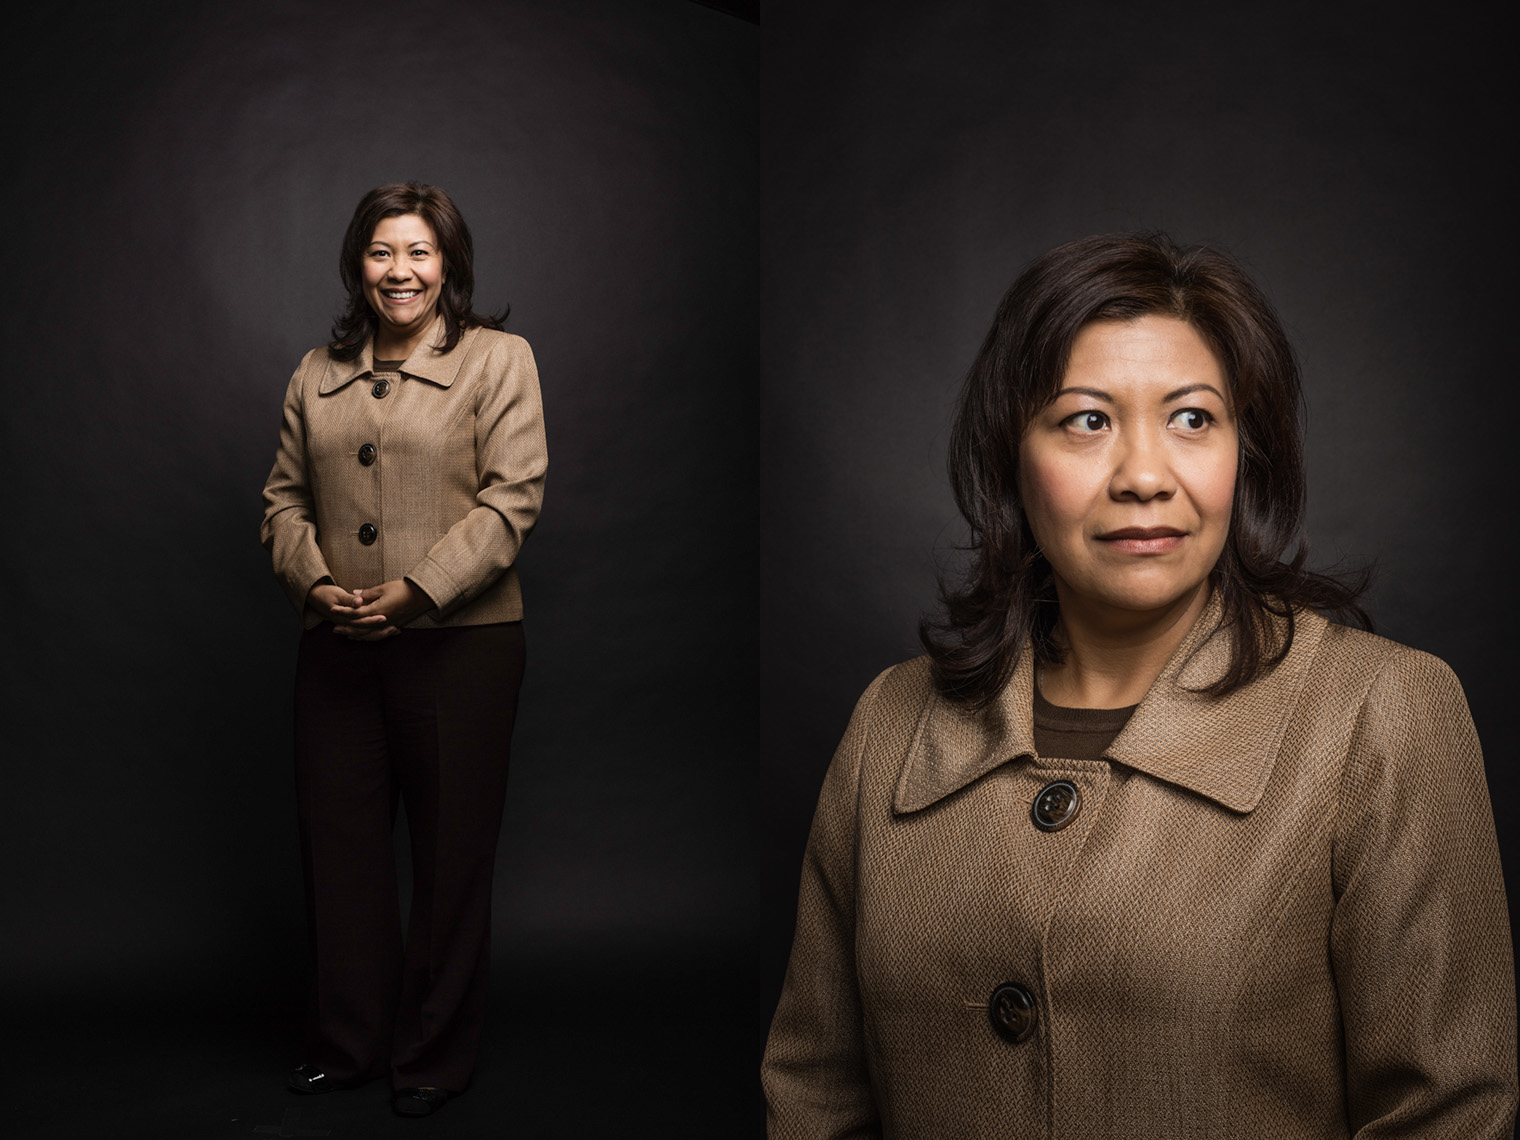 NORMA TORRES, (CA 35TH, D) - Photographed for Politico  • Jason Grow Photography